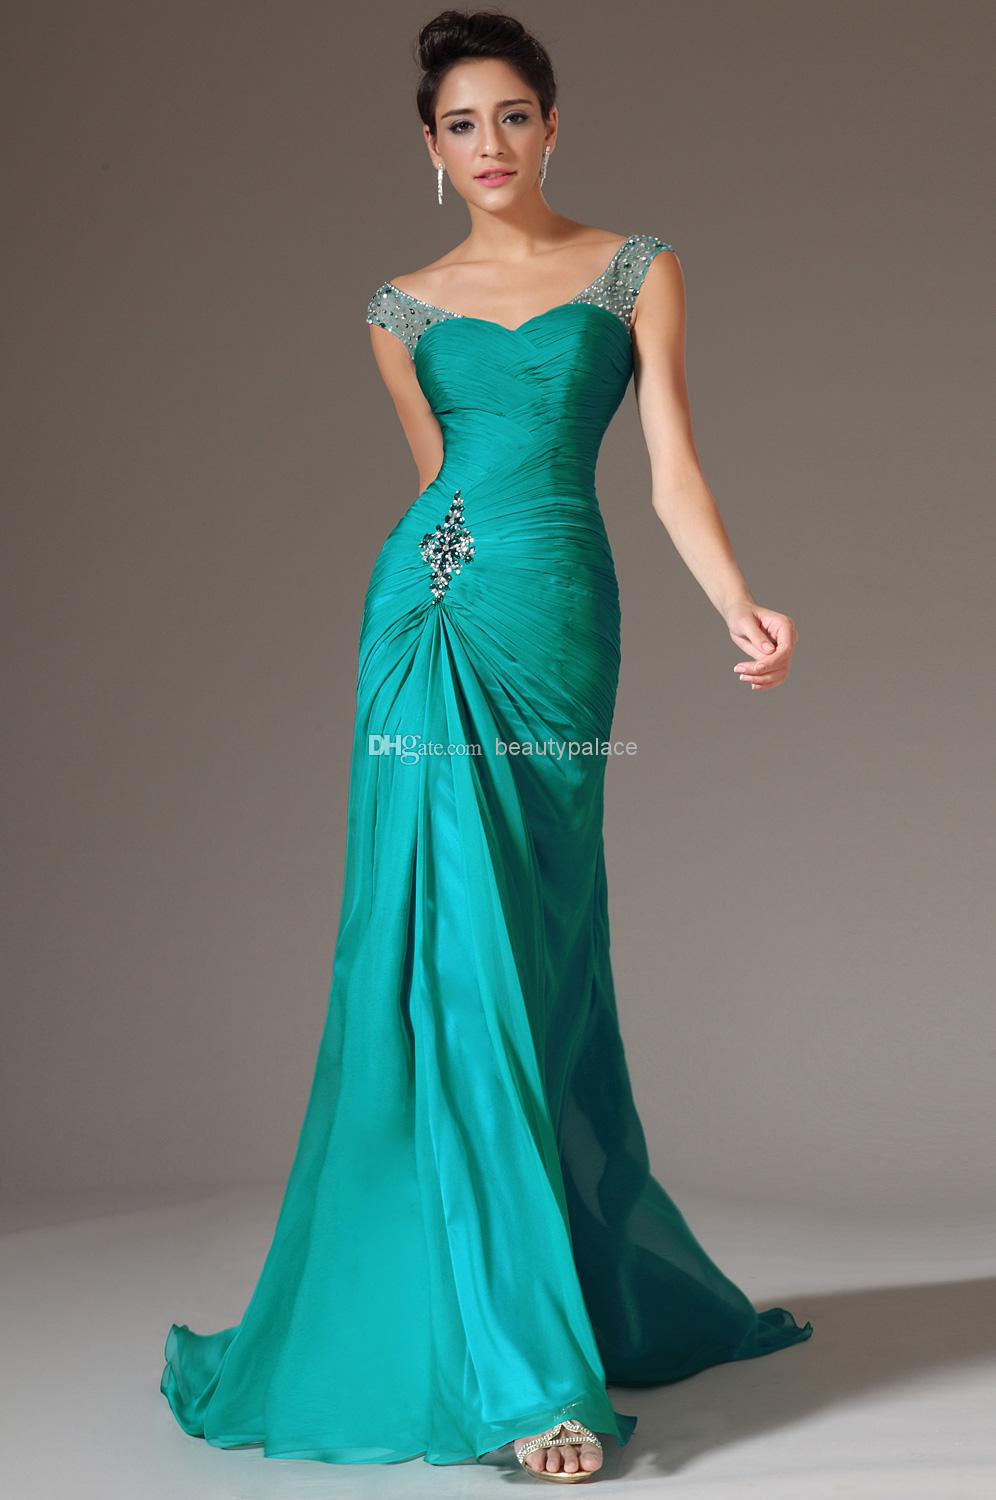 Rent Formal Dresses Austin Tx - Holiday Dresses